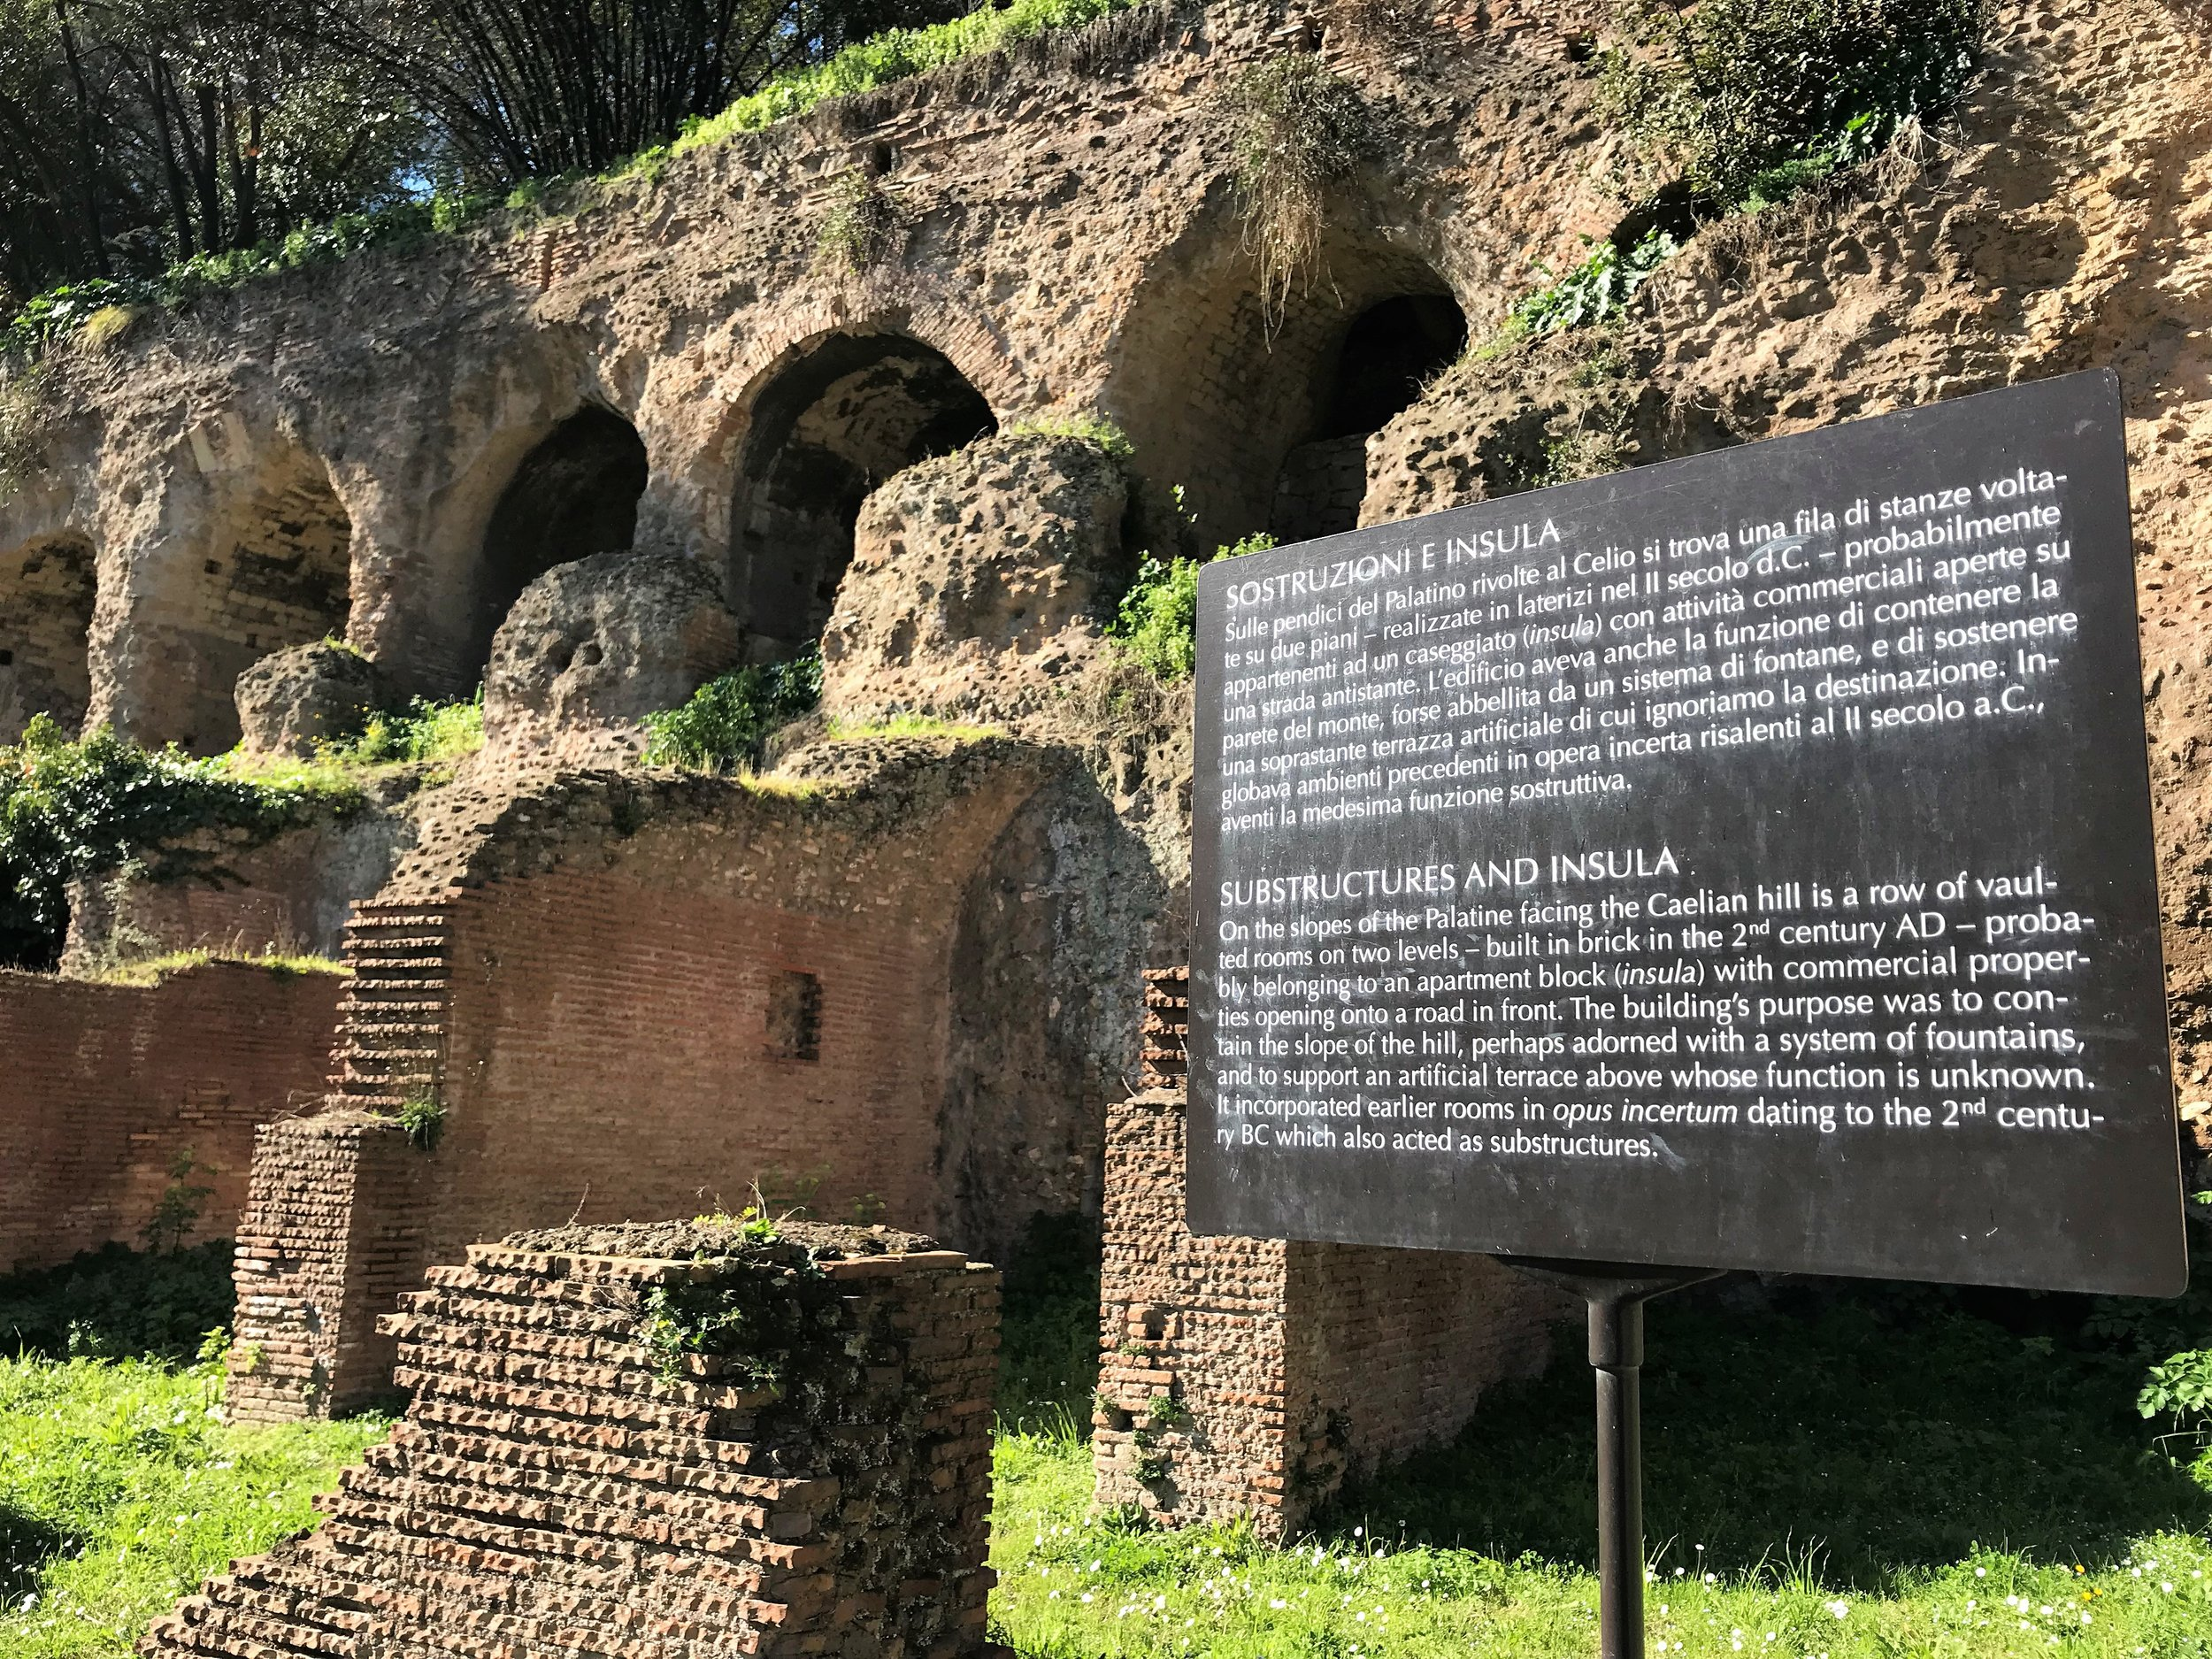 Structures in Palatine Hill